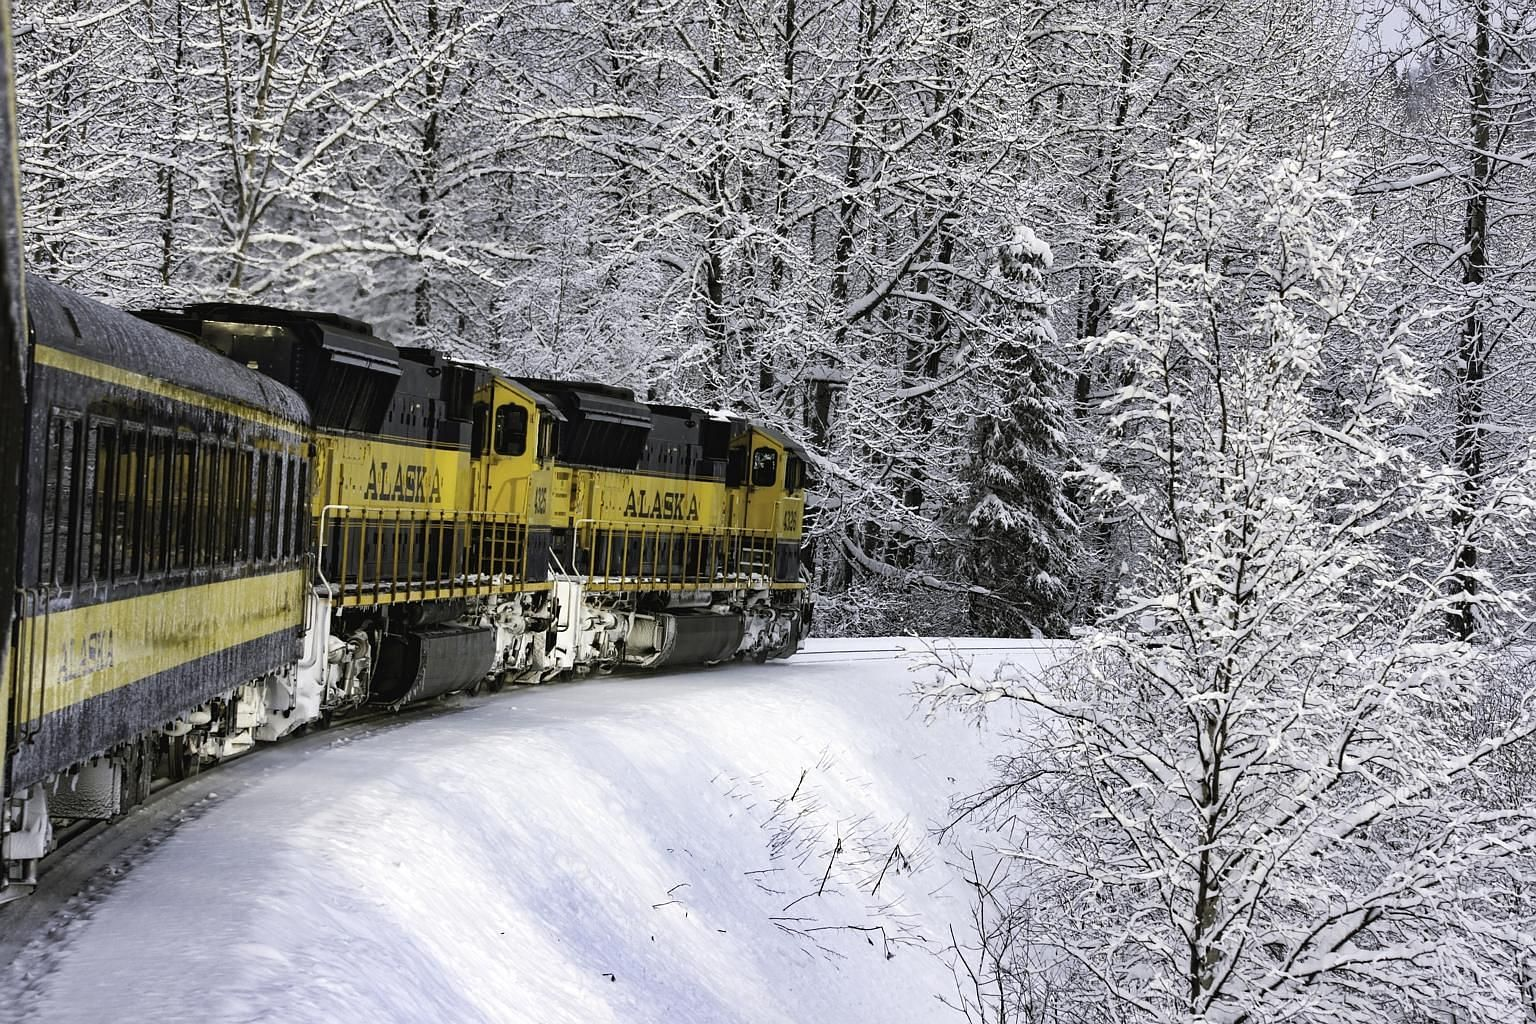 In Fairbanks in Alaska, one can (clockwise from top) go dog-sledding, soak in a hot spring or catch the aurora borealis or Northern Lights. Go on a 12-hour journey on Alaska Railroad's Aurora Winter Train to Fairbanks in Alaska and enjoy a magical wi